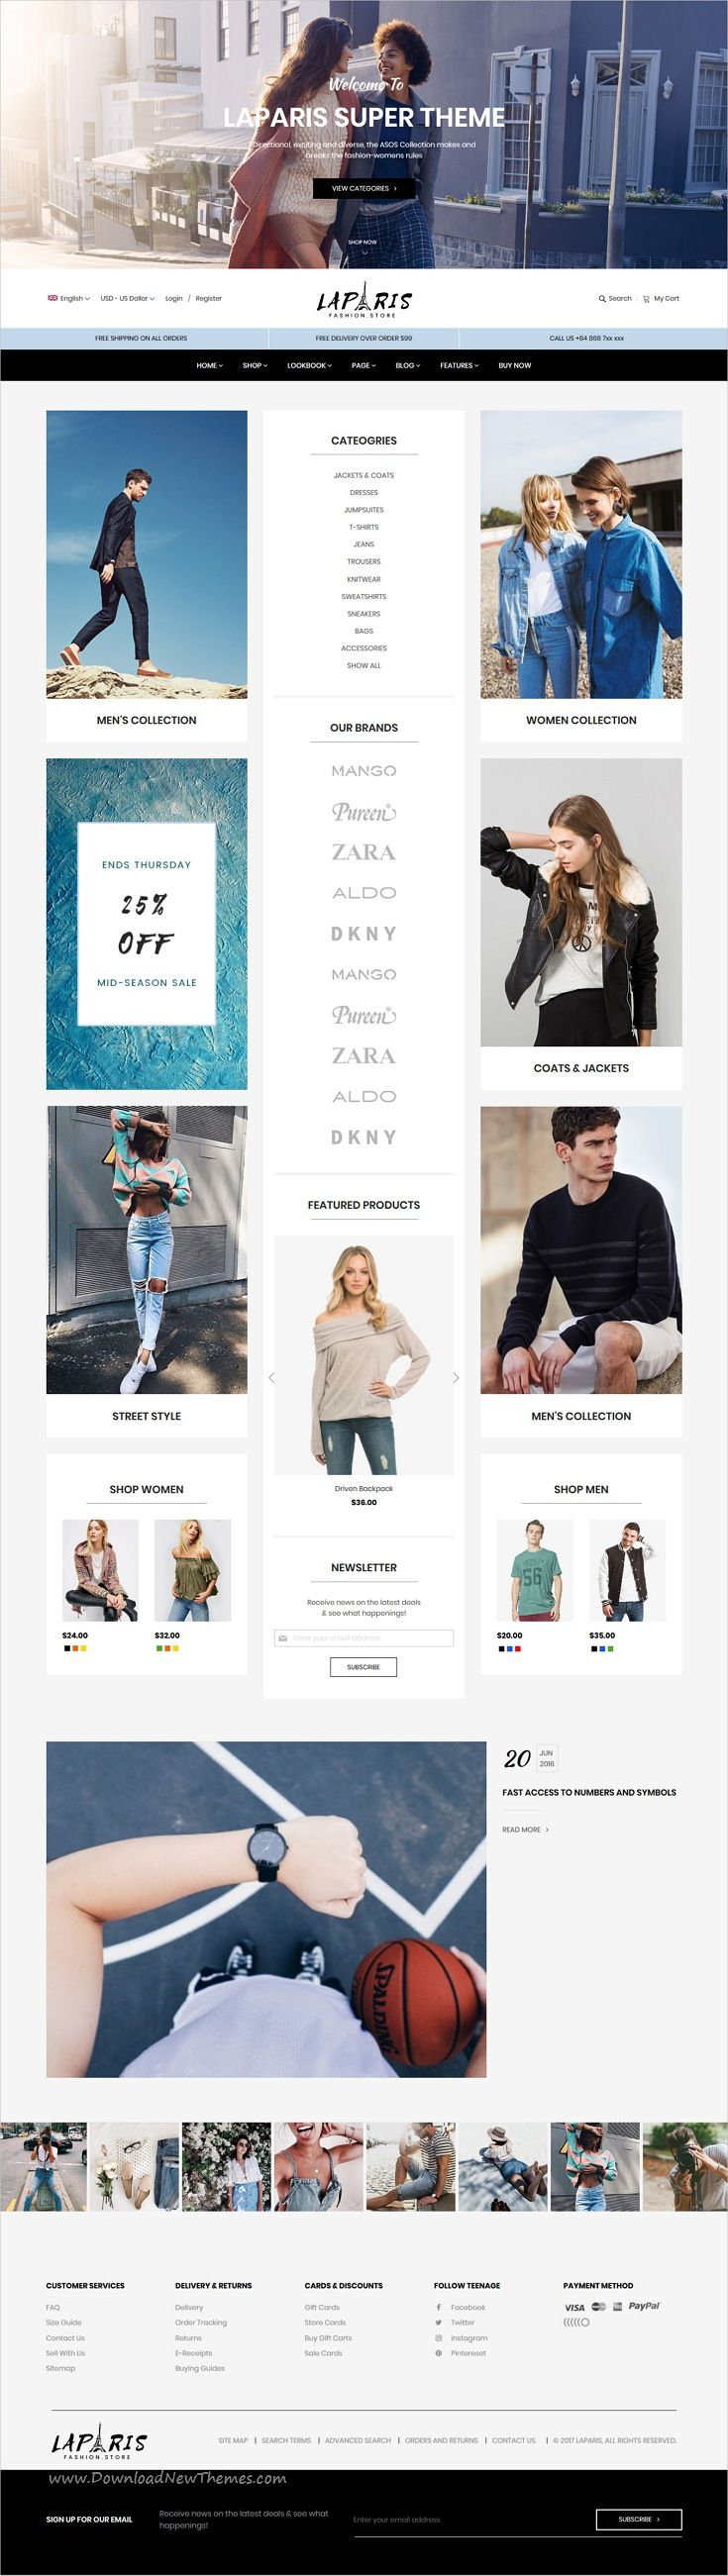 LaParis is clean, stylish and modern design responsive #Magento theme for fashion store stunning #eCommerce website with 10+ niche homepage layouts download now..